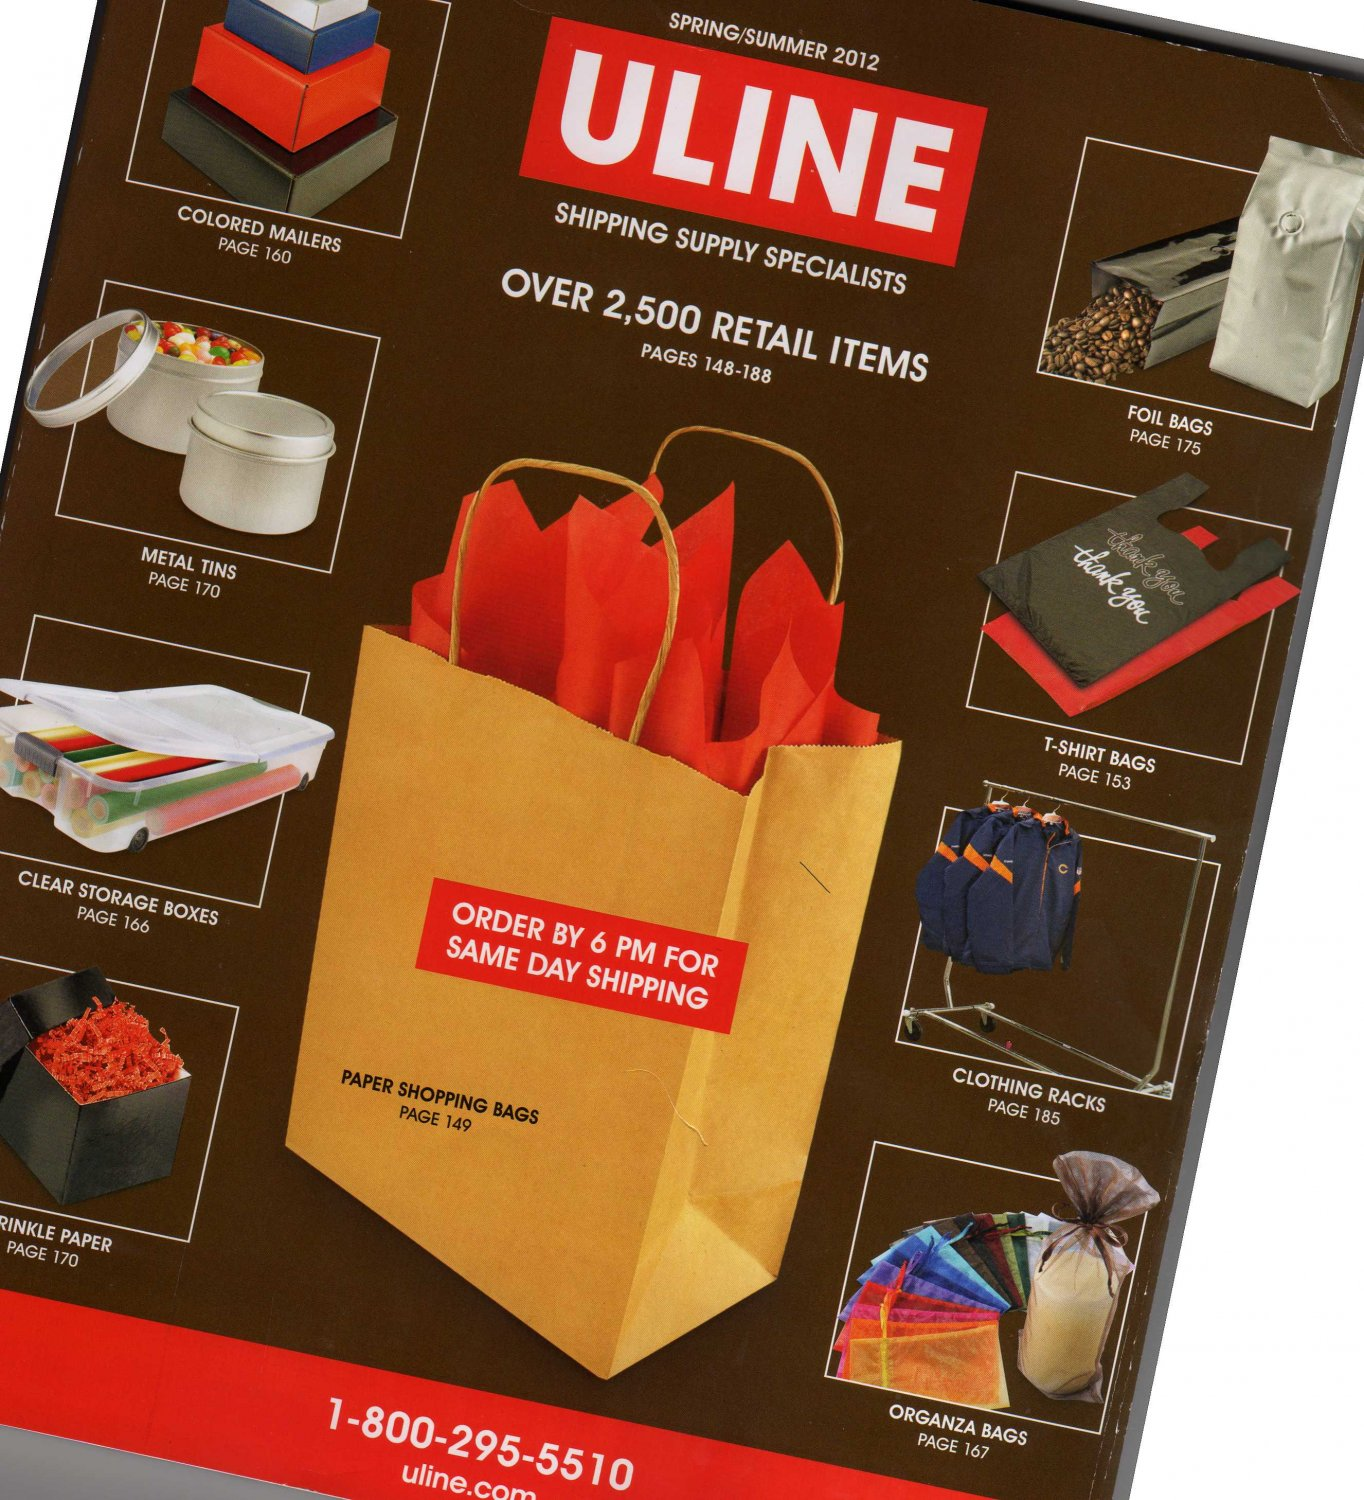 Uline shipping supply catalog brings you a wide assortment of packaging and shipping supplies with shipping products ranging from boxes and tape to true value Uline brand products and more - featured at crawotinfu.ga